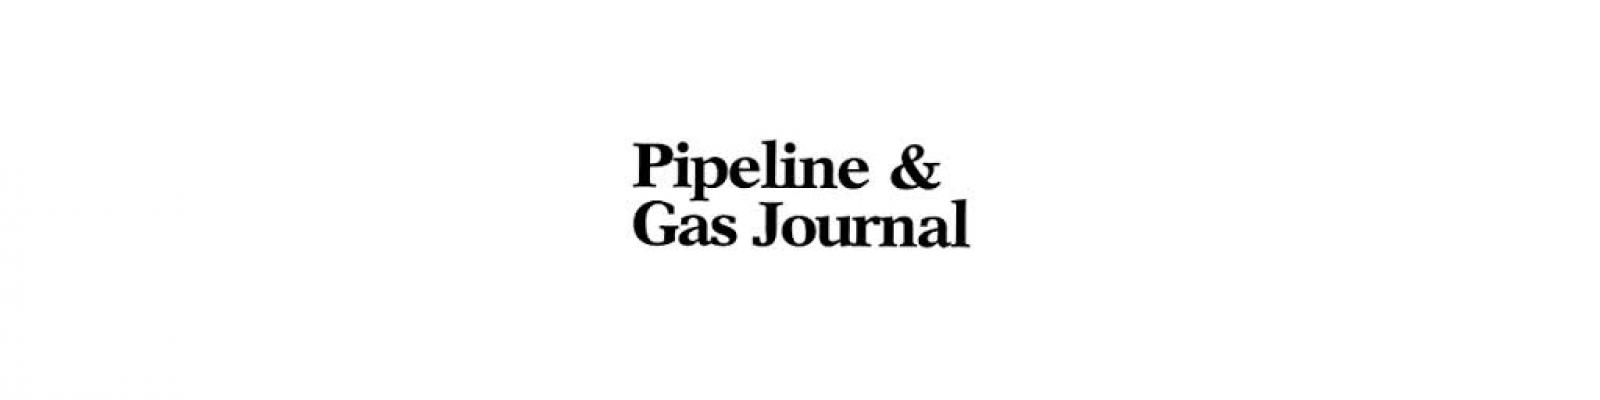 Danila Bochkarev Analyzes Gazprom Strategies in Pipeline and Gas Journal